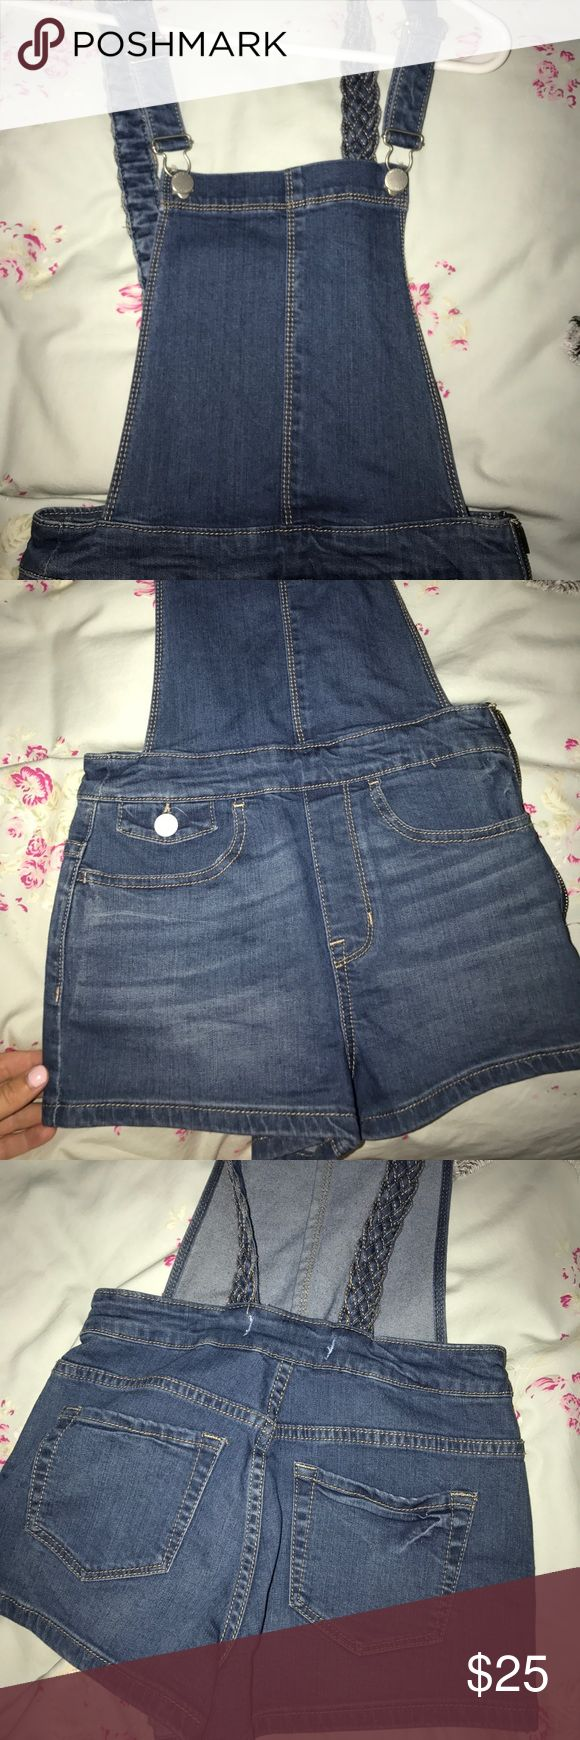 Denim short overalls from Pac sun never been worn..took tags off for Coachella and never ended up going. Now they are way too small for me. Great for festivals!!! Bullhead Other